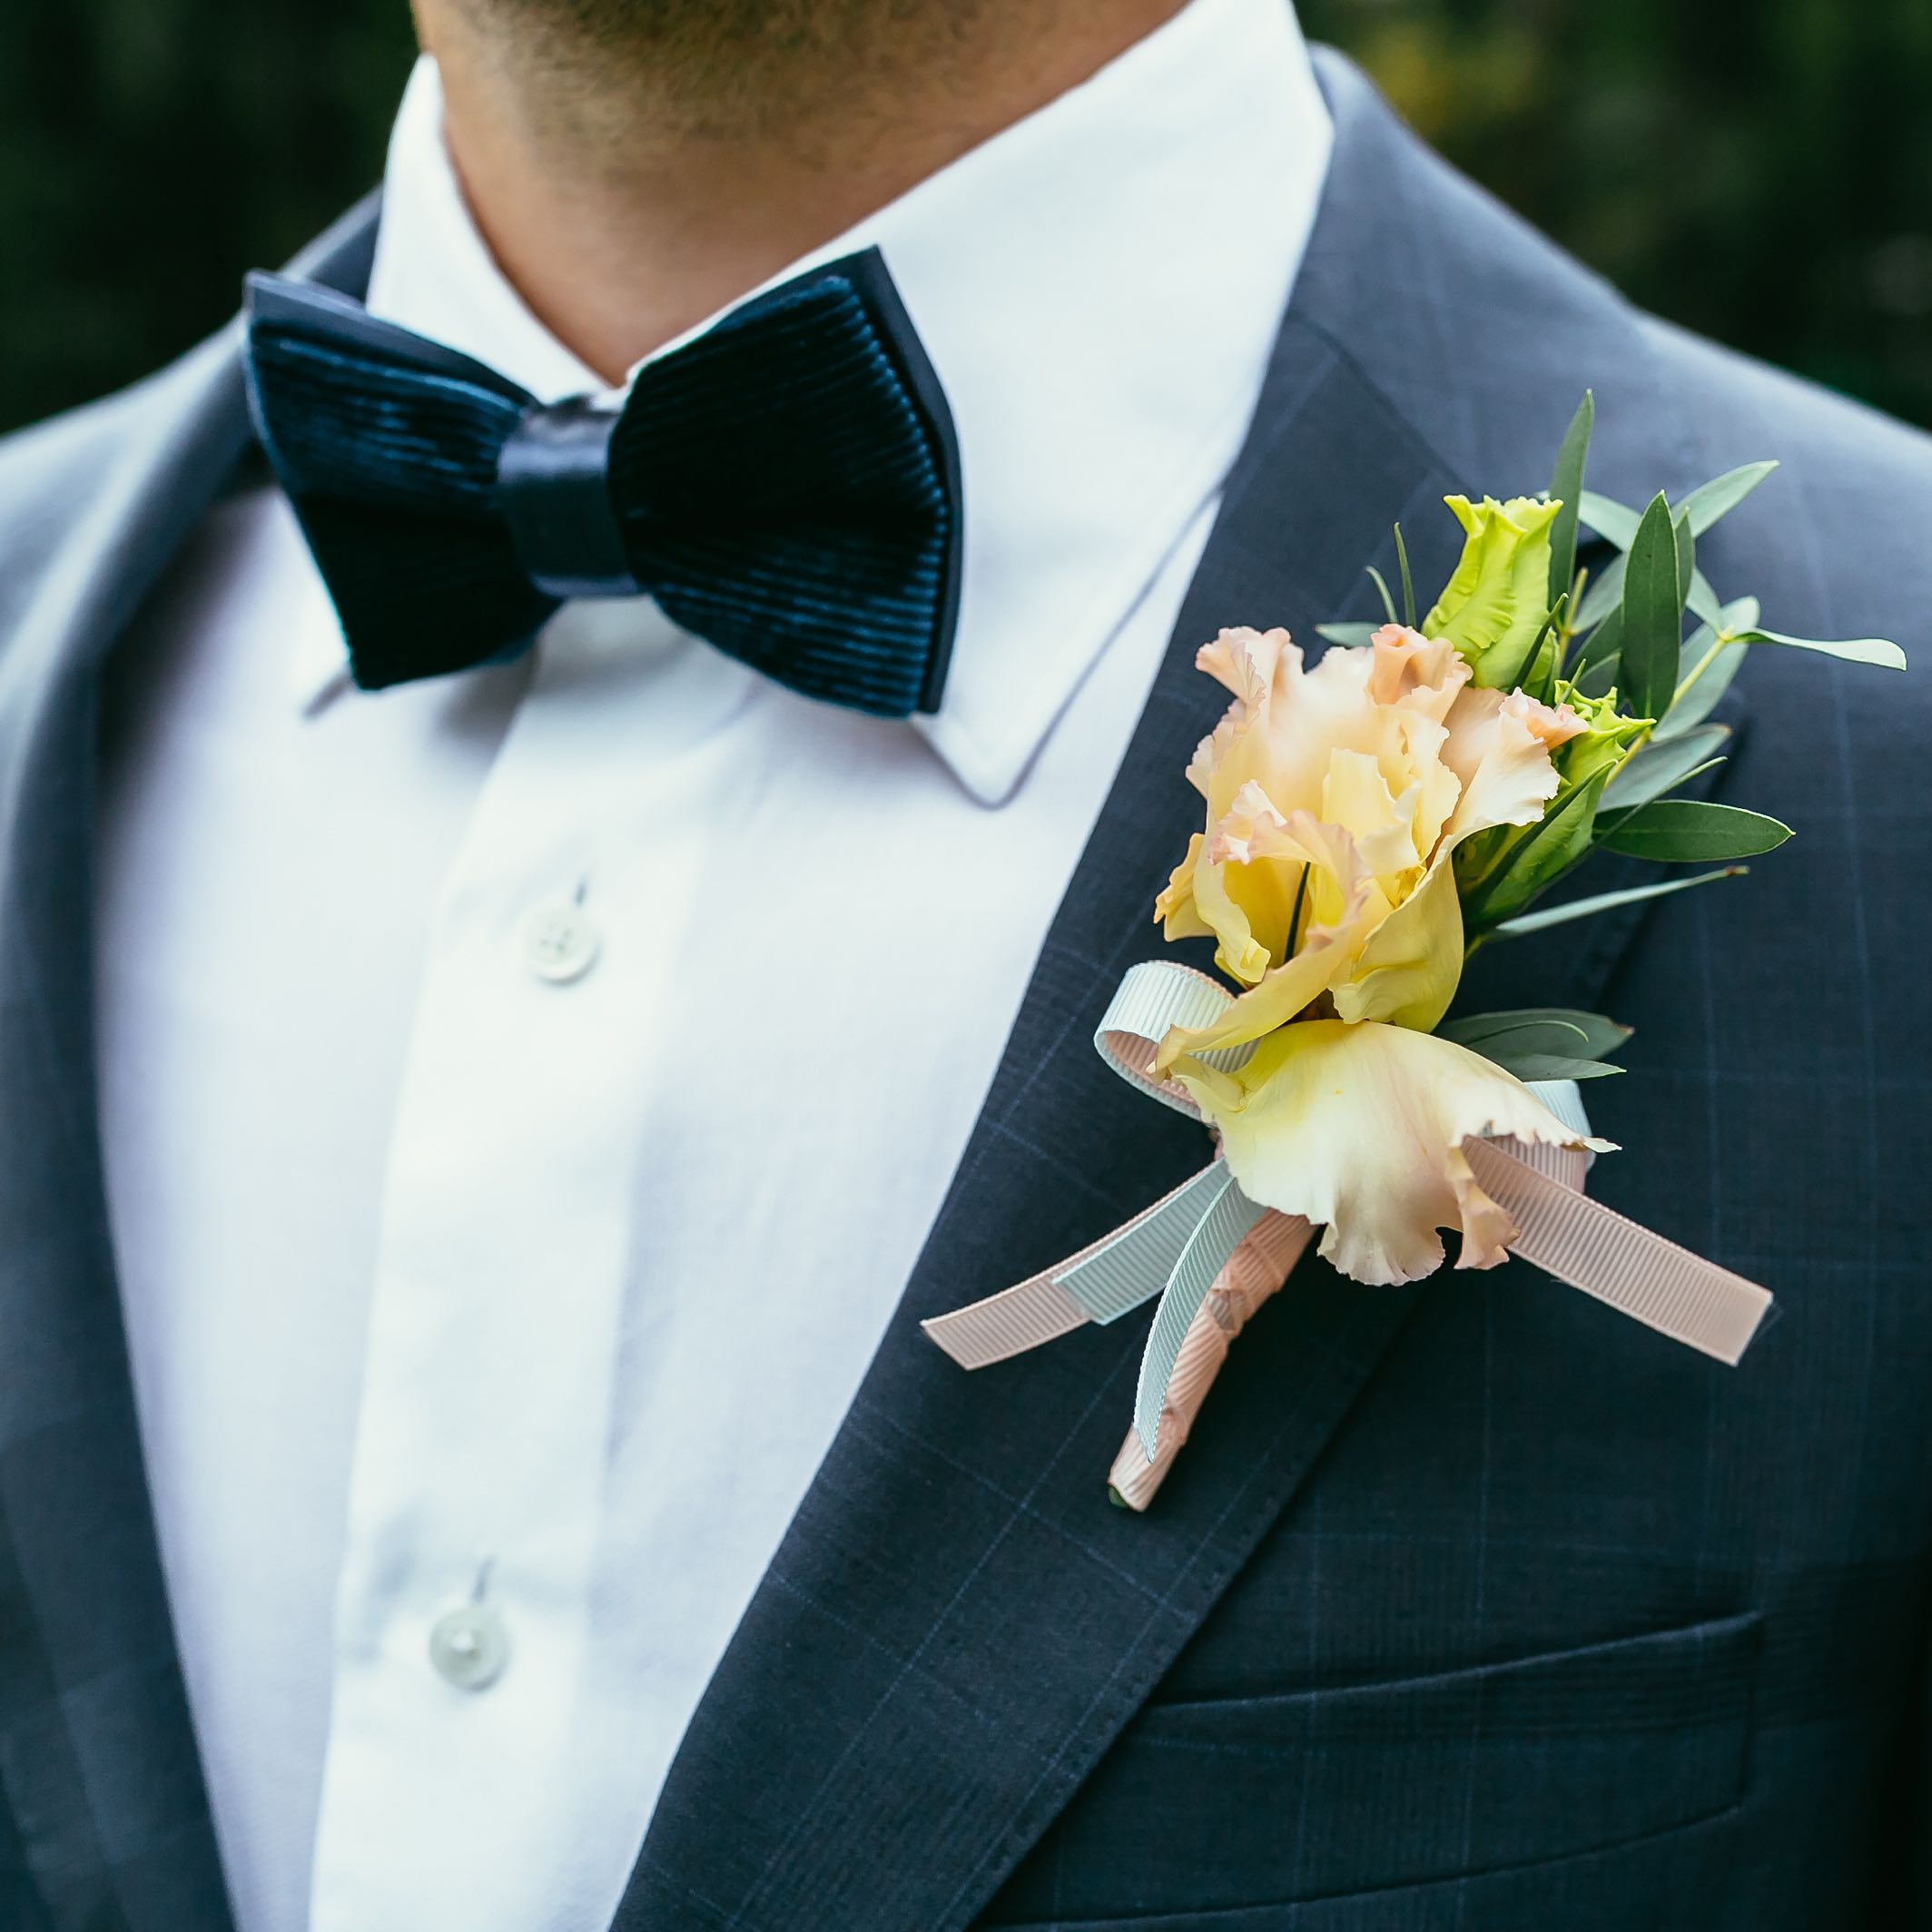 Wedding gifts for the groom